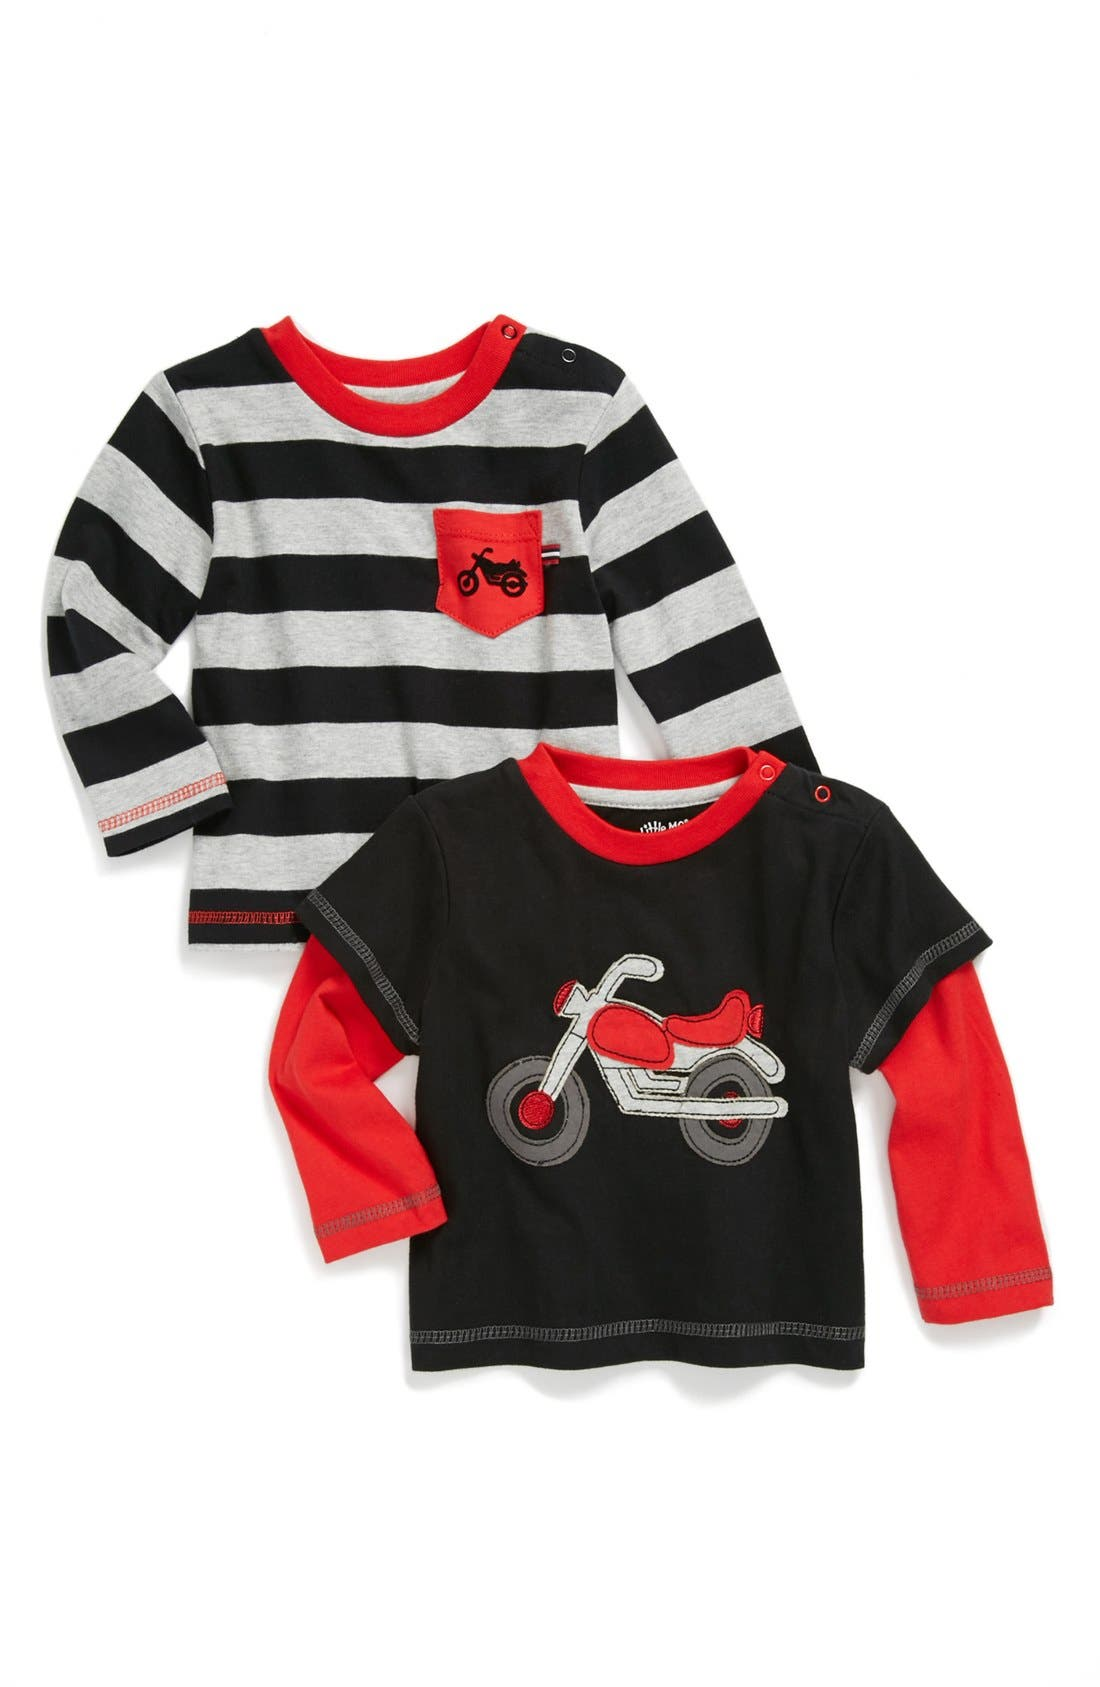 Alternate Image 1 Selected - Little Me 'Motorcycle' T-Shirt (2-Pack) (Baby Boys)